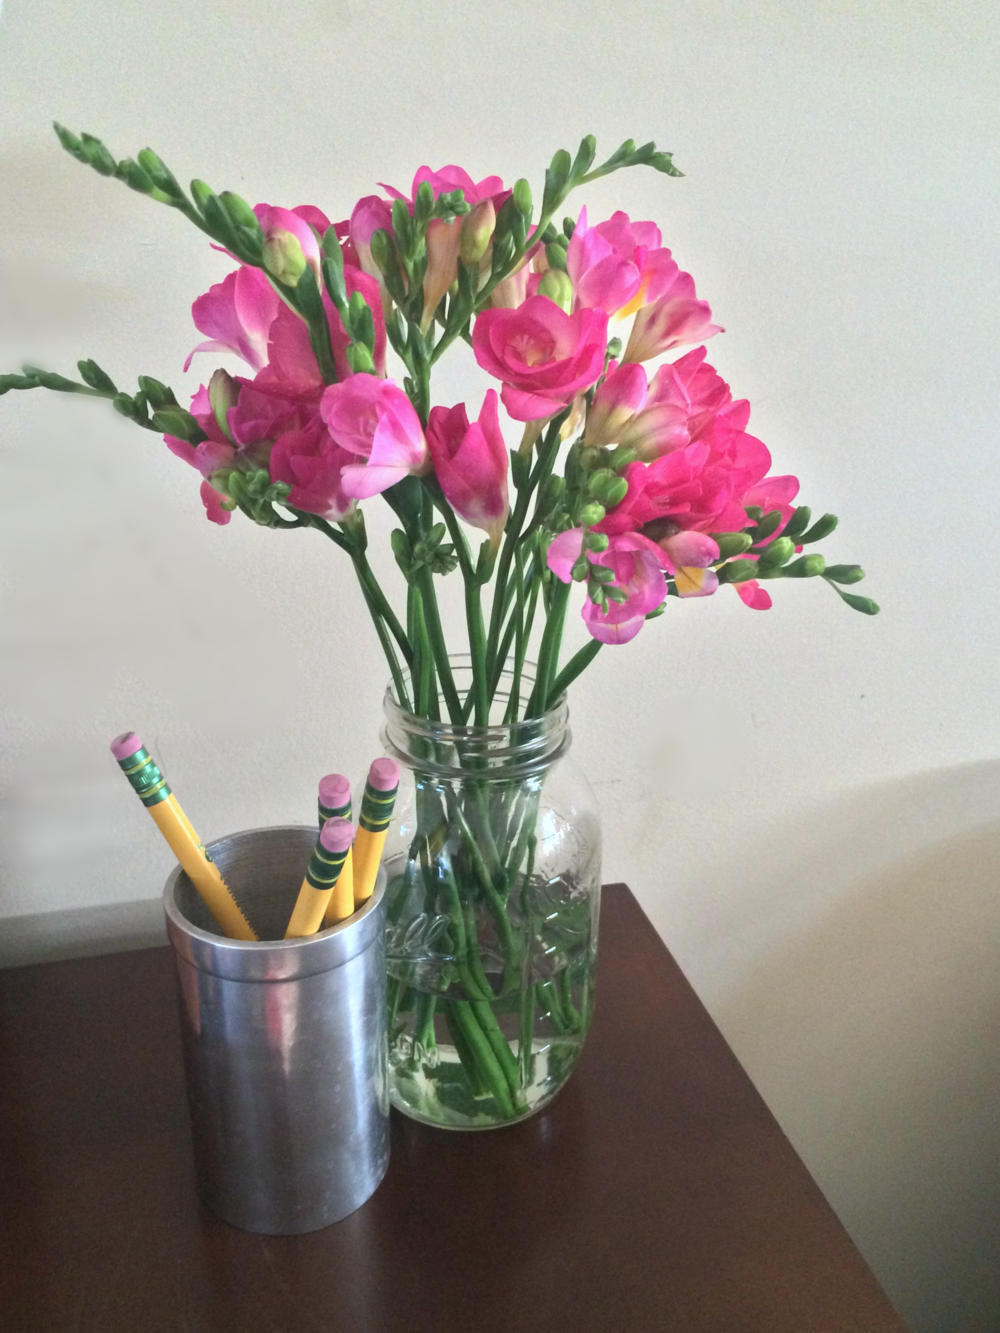 """Love peonies! But sometimes they feel so fancy. Smaller flowers are just as pretty. Oh and let's not forget about No.2 pencils. Come on - pencils symbolize DREAMS! These particular ones are """"My First Pencils"""" from Ticonderoga. Totally not sensible - they're bigger for kid hands. I think they're funny. Fact: one day I'll personalize my own pencils and give them to people as a calling card. It'll be my thing."""